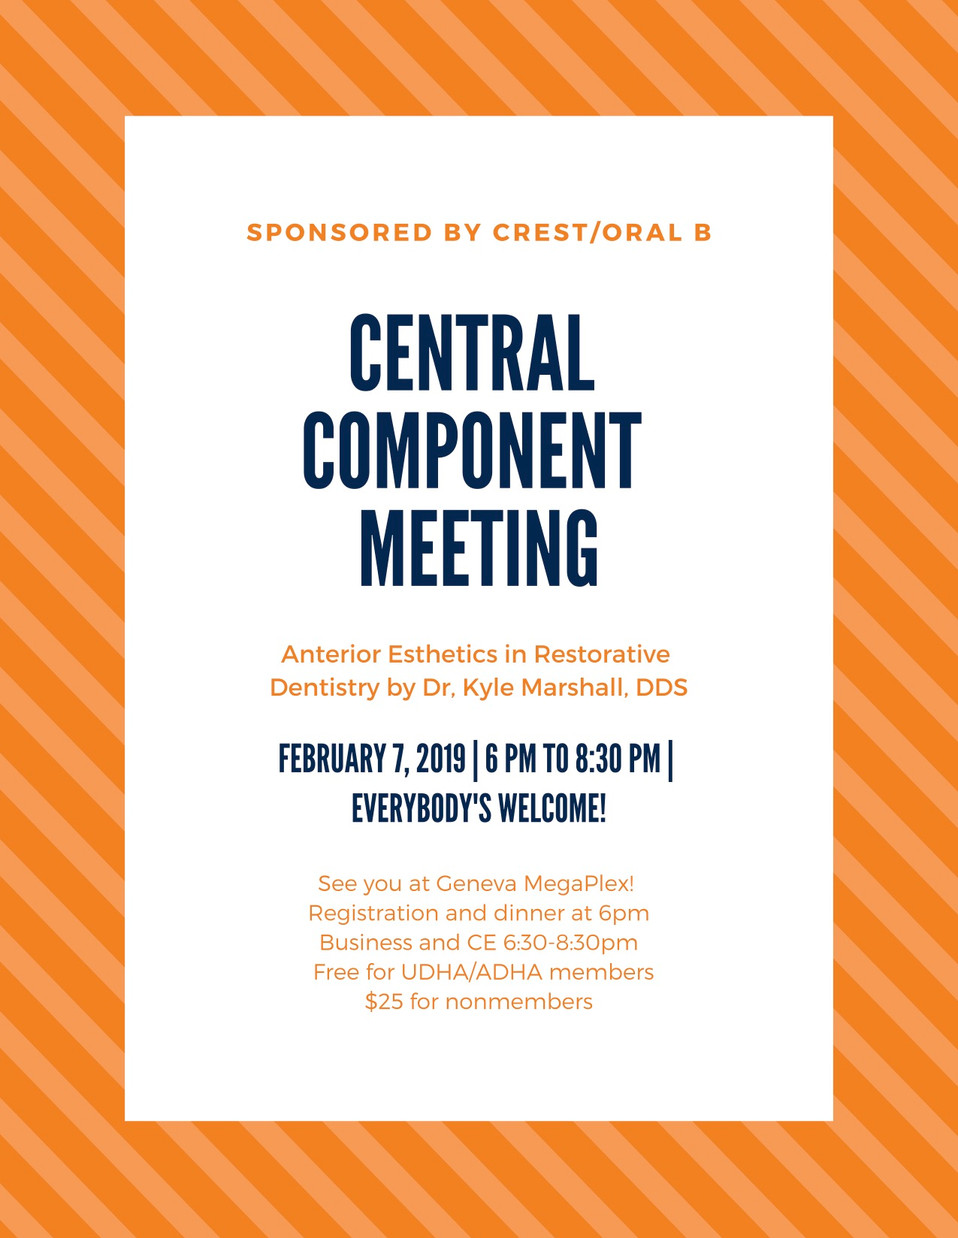 Central Component Meeting